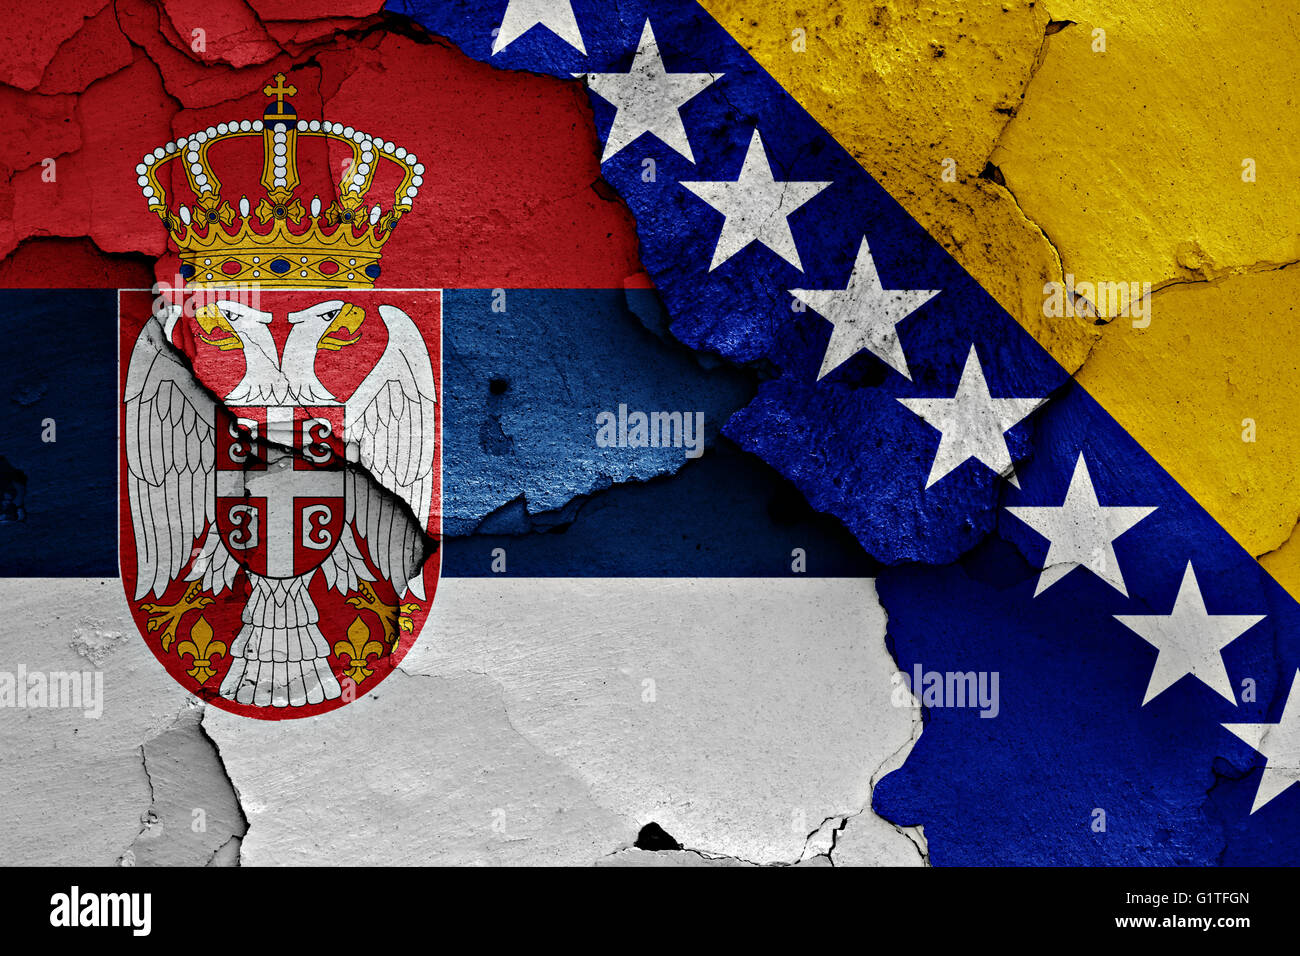 flags of Serbia and Bosnia and Herzegovina painted on cracked wall - Stock Image